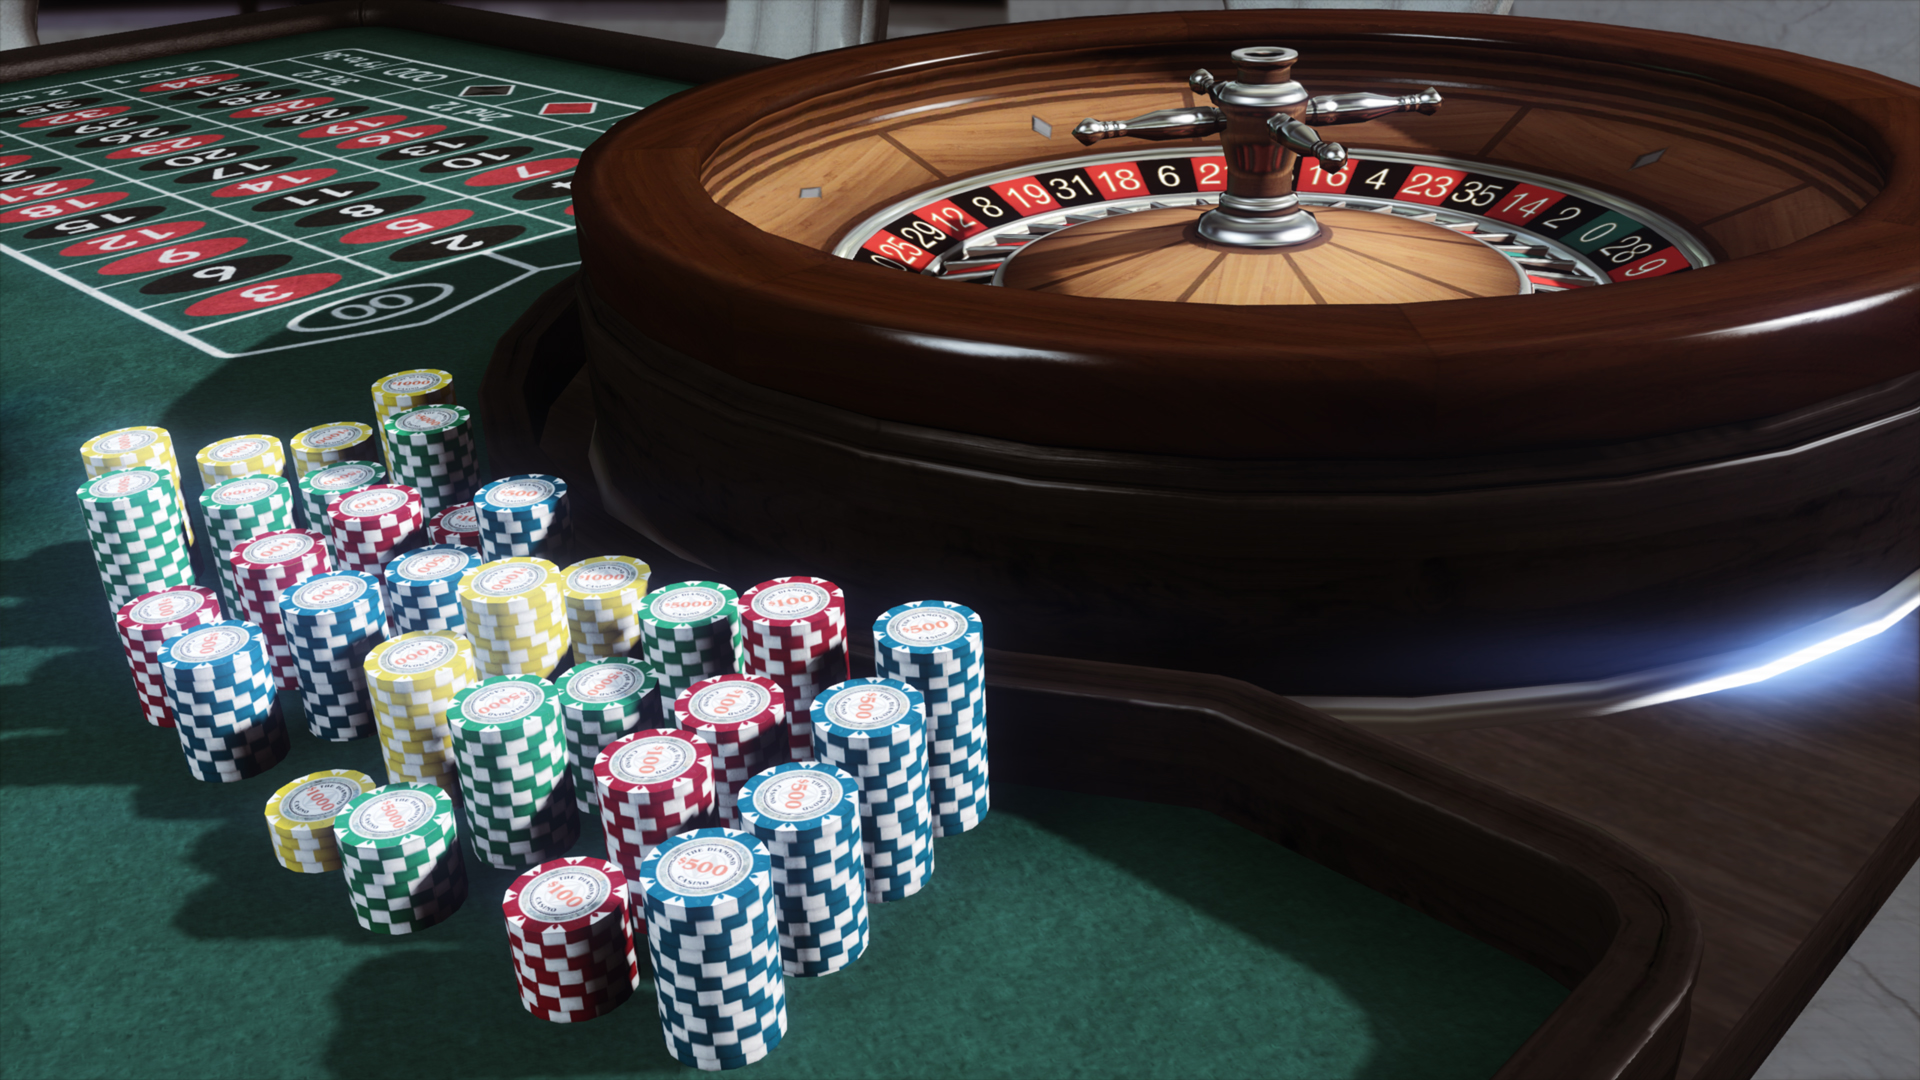 Participating in Online Gambling Games in an Excellent Way